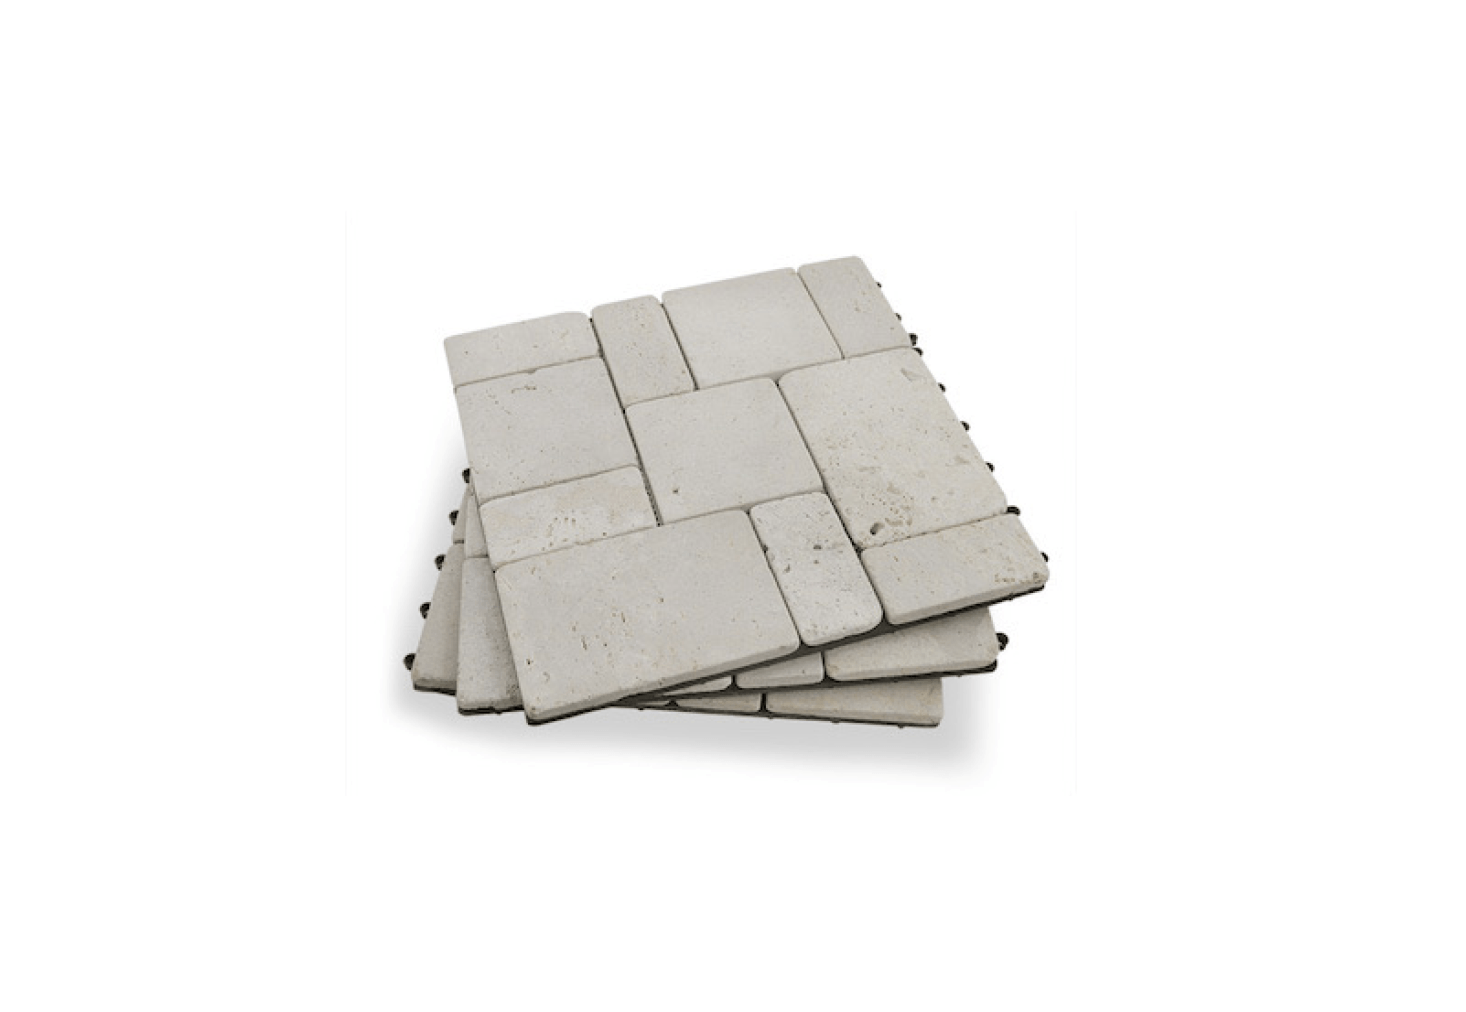 The 11.8 By 11.8 Inch Travertine Stone Deck Tiles With A Matte Finish